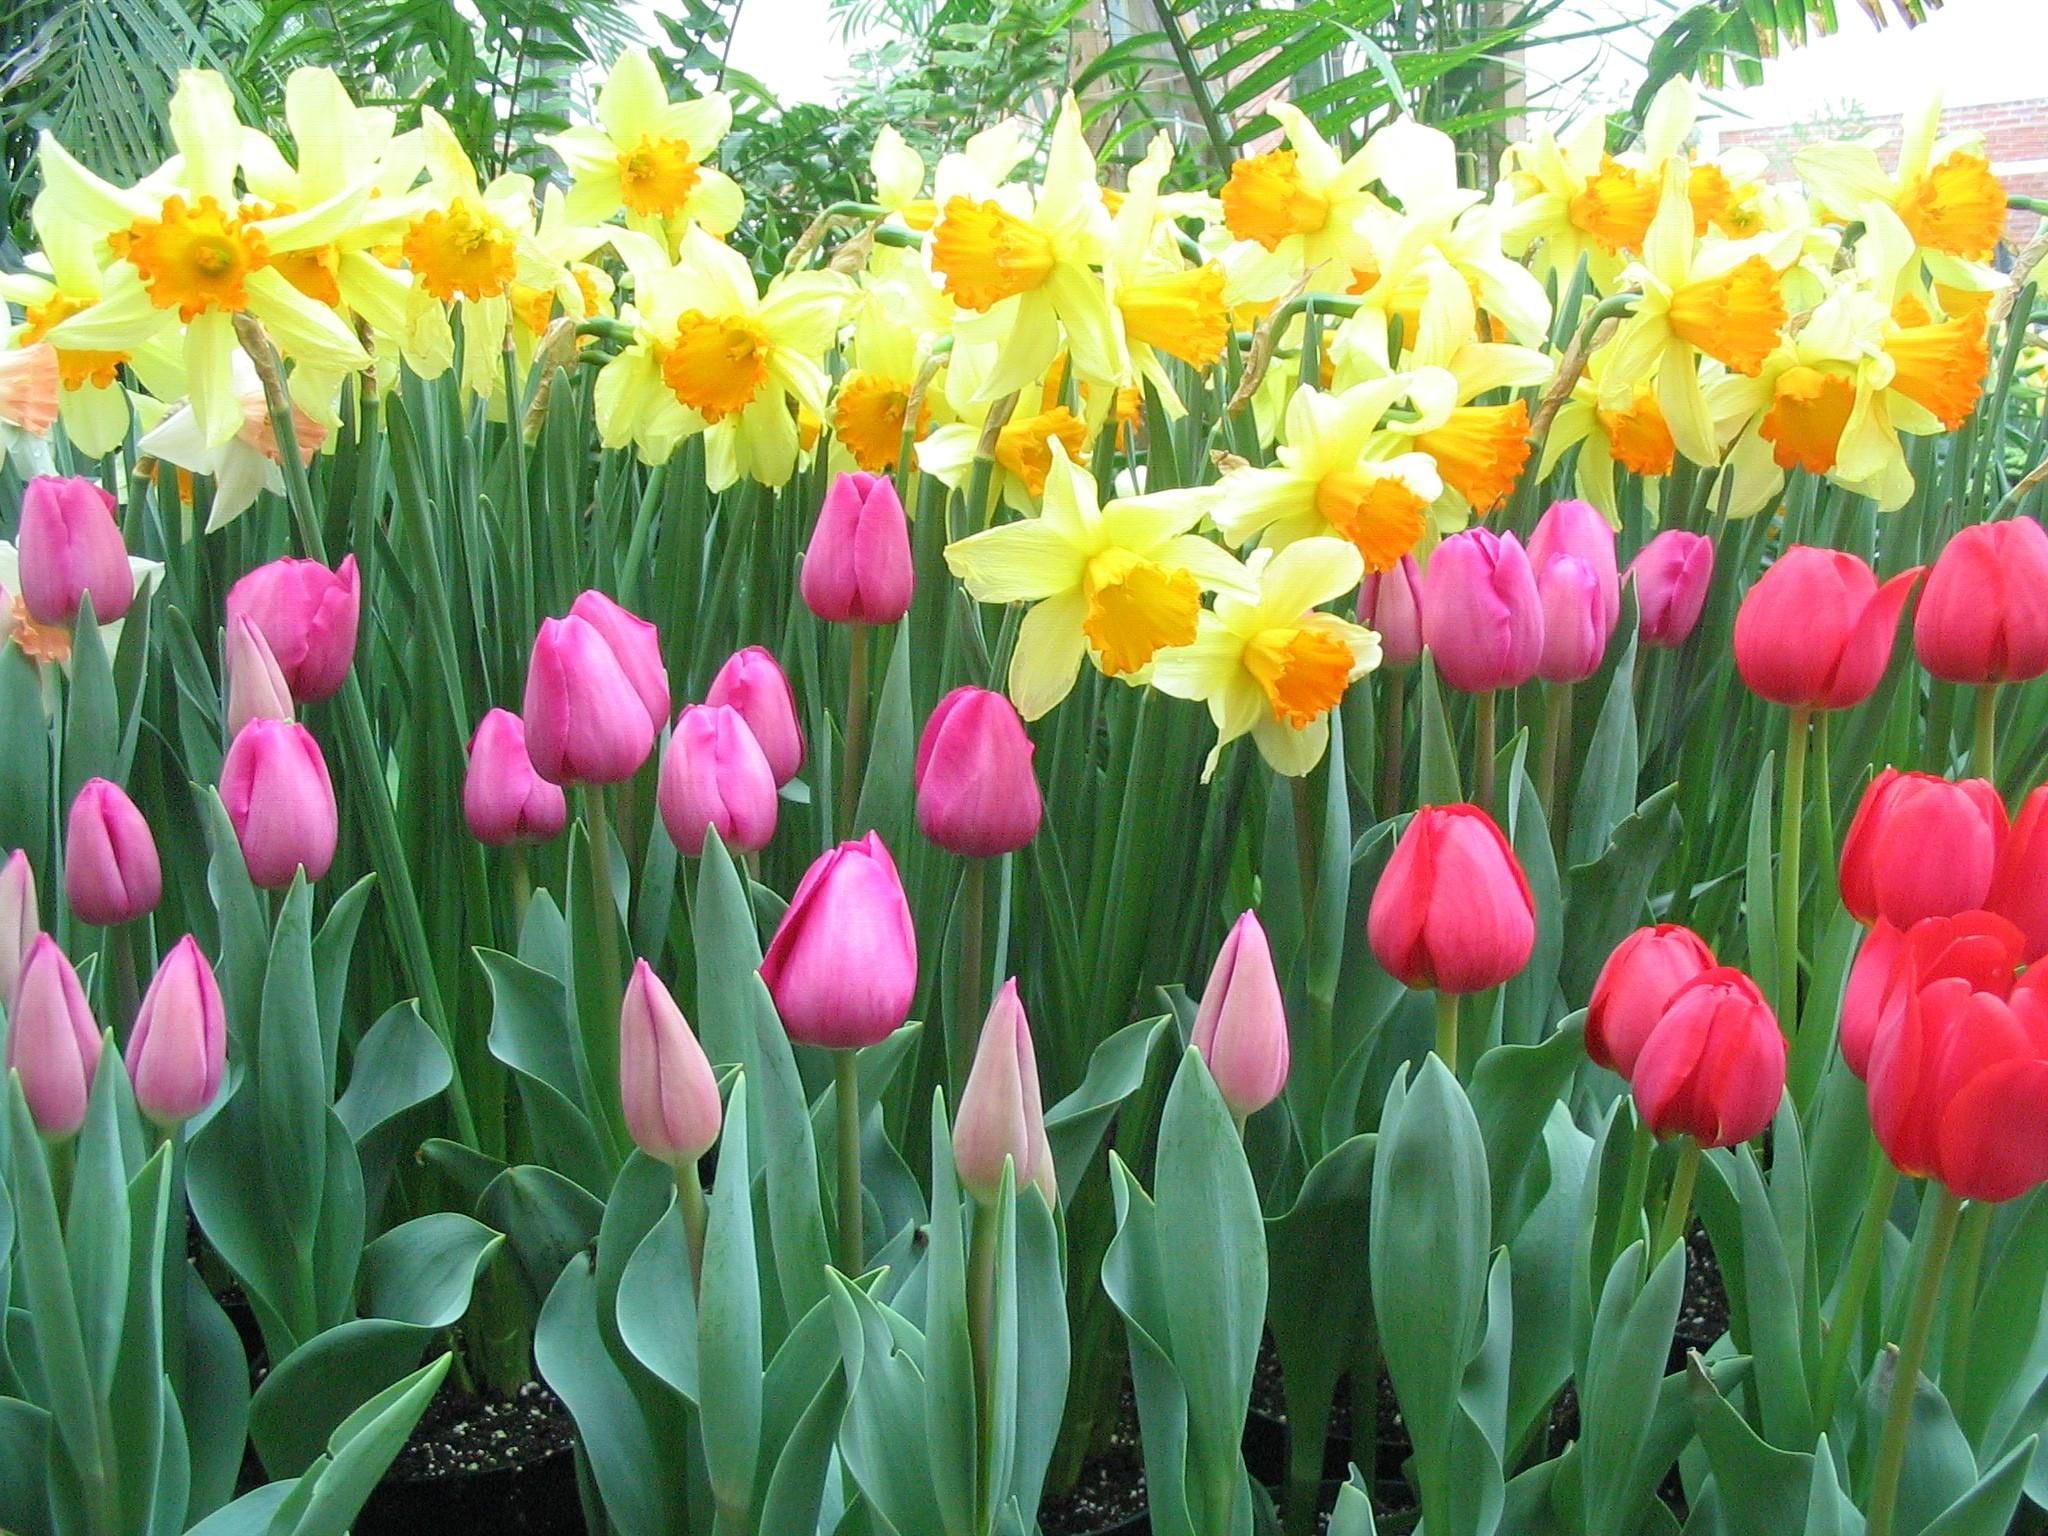 17 Best images about Spring Bulb Gardens on Pinterest Gardens